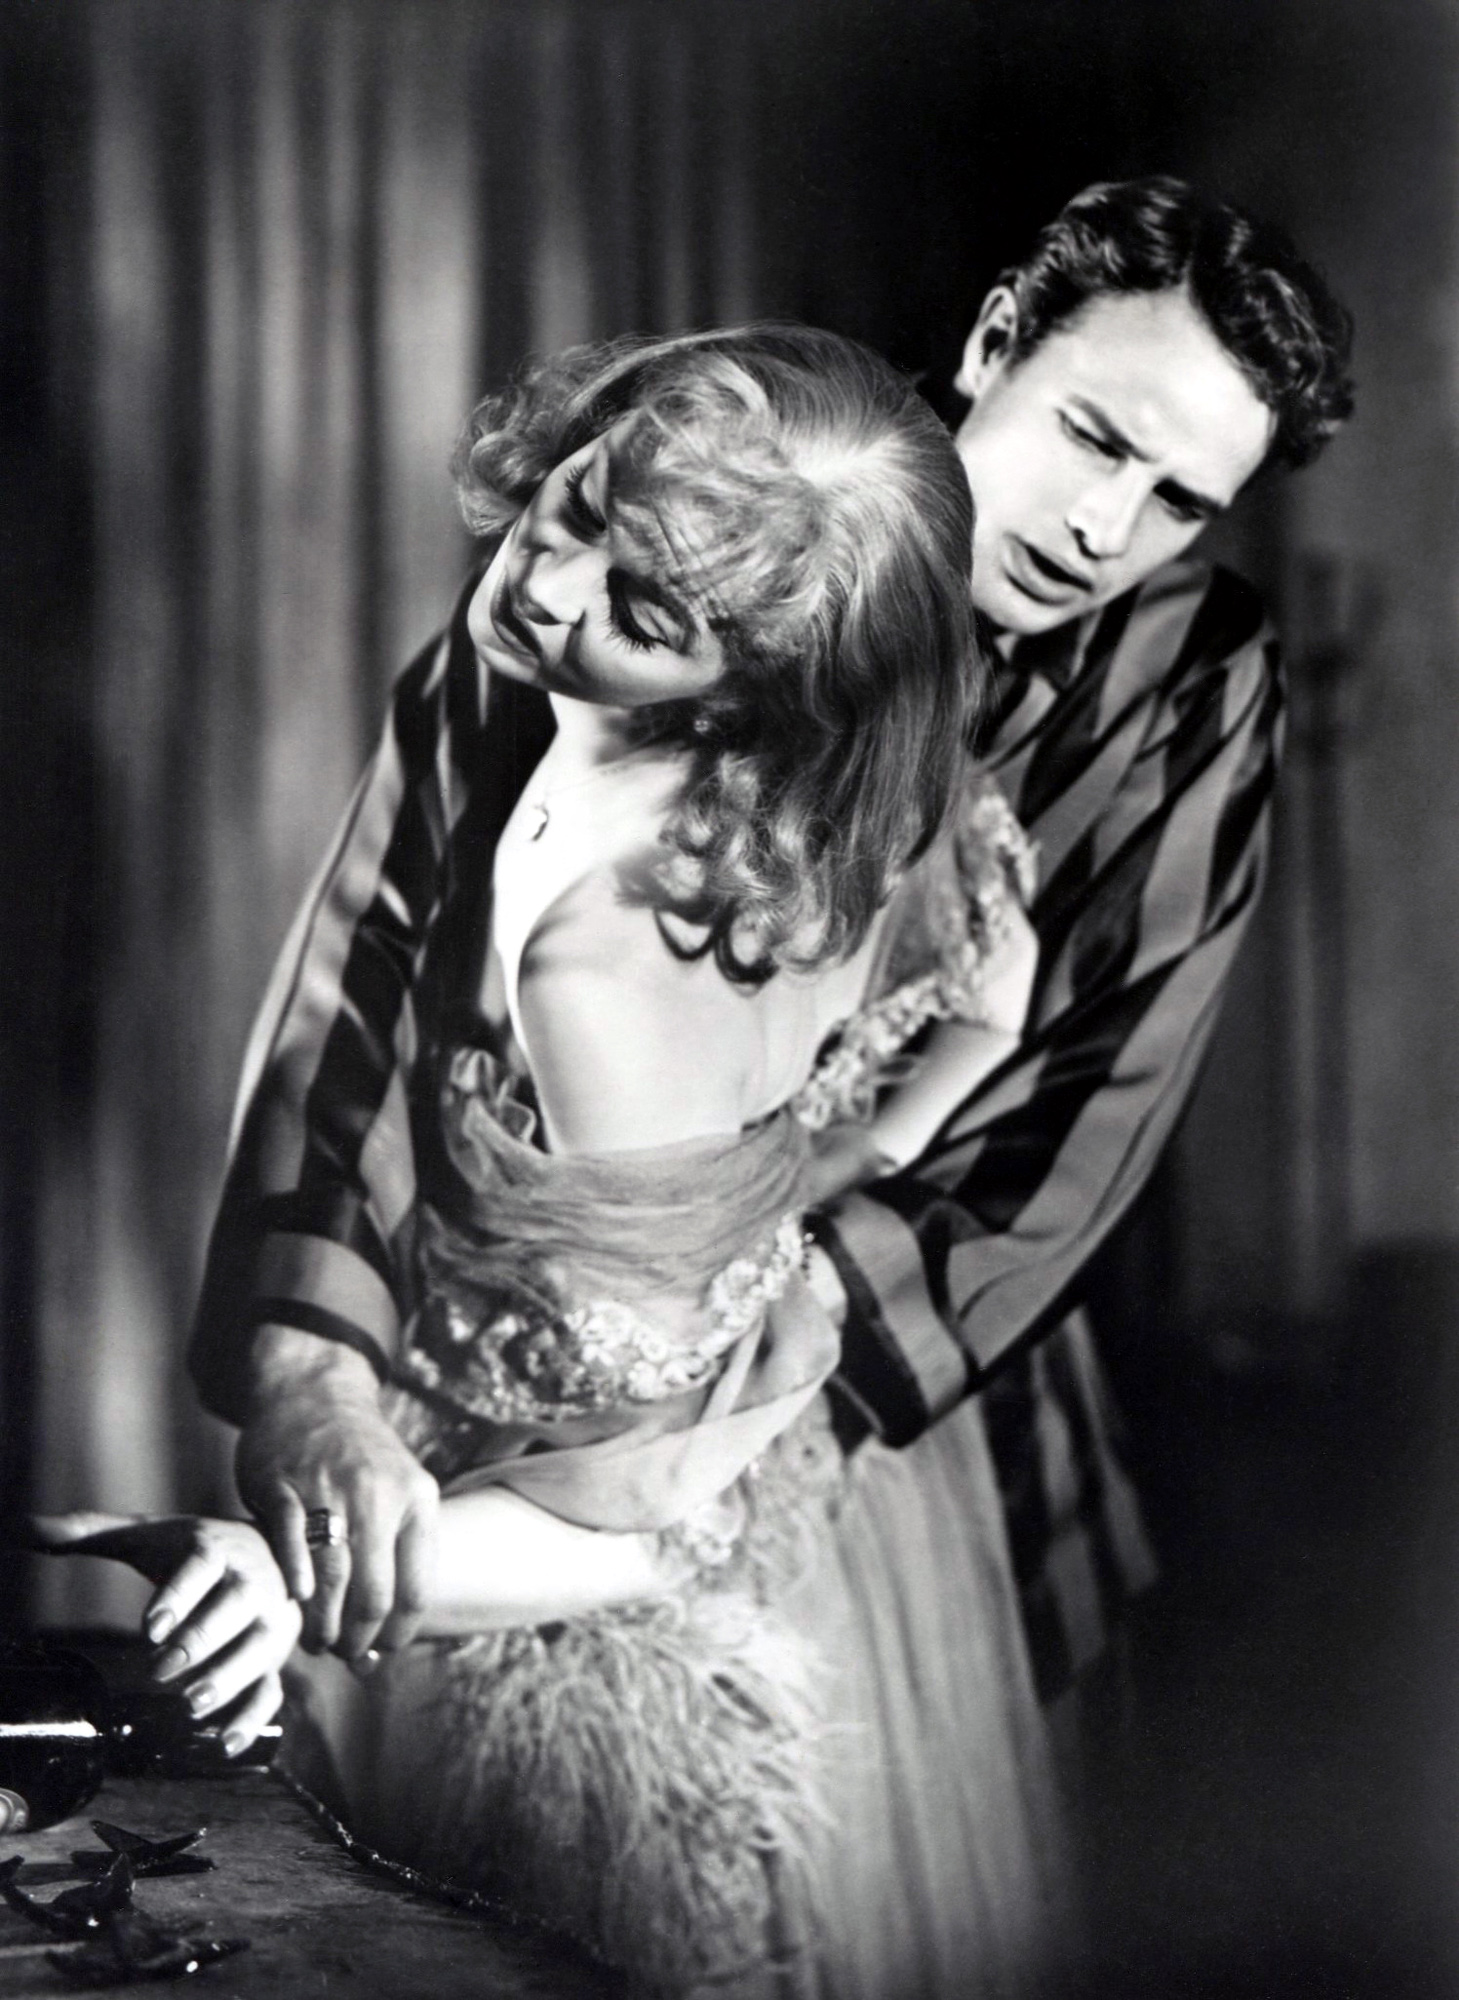 a strretcar named desire A streetcar named desire is a 1947 play written by american playwright tennessee williams that received the pulitzer prize for drama in 1948.